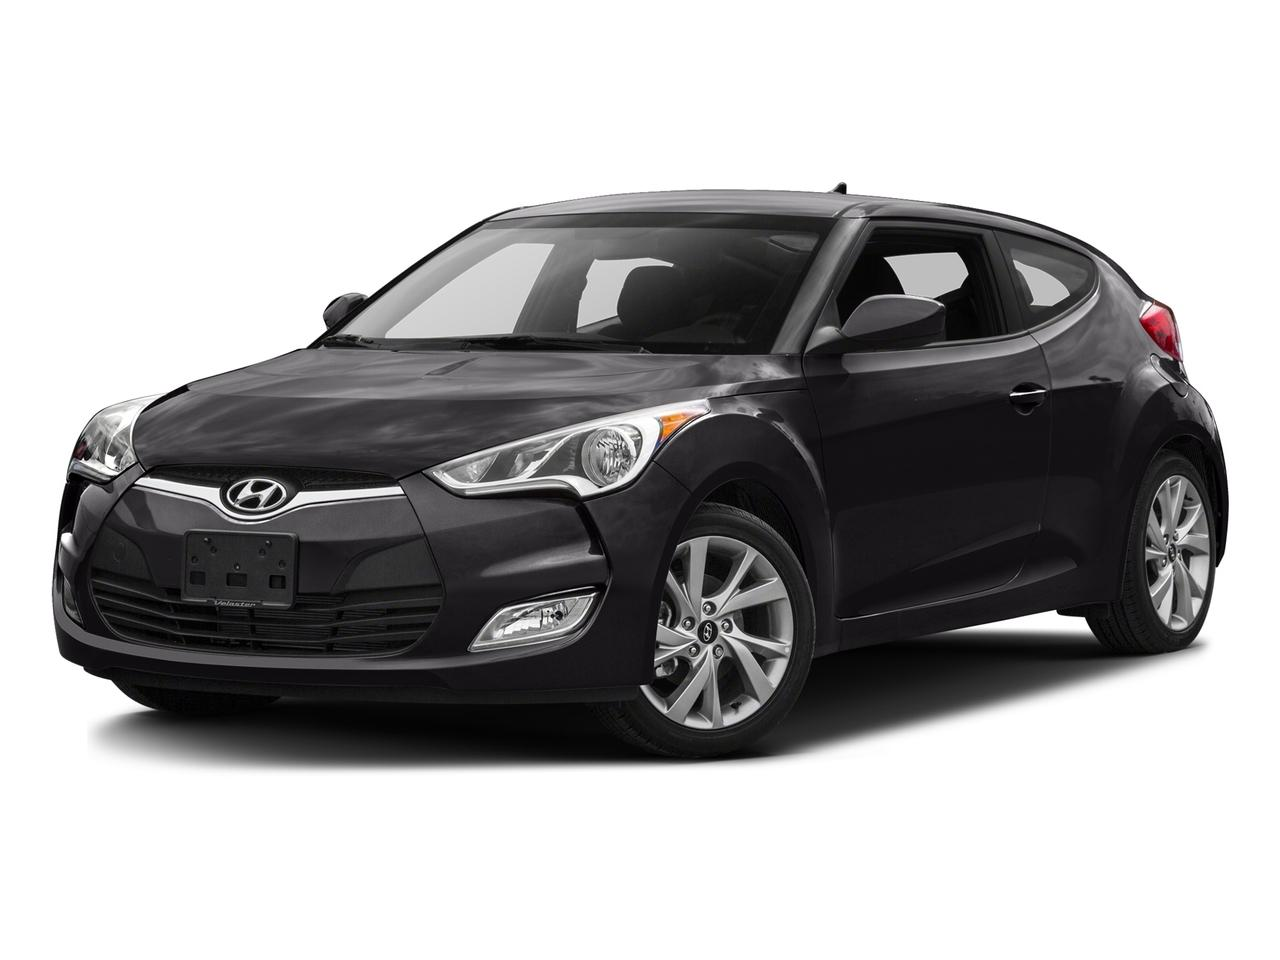 2016 Hyundai Veloster Vehicle Photo in Joliet, IL 60586